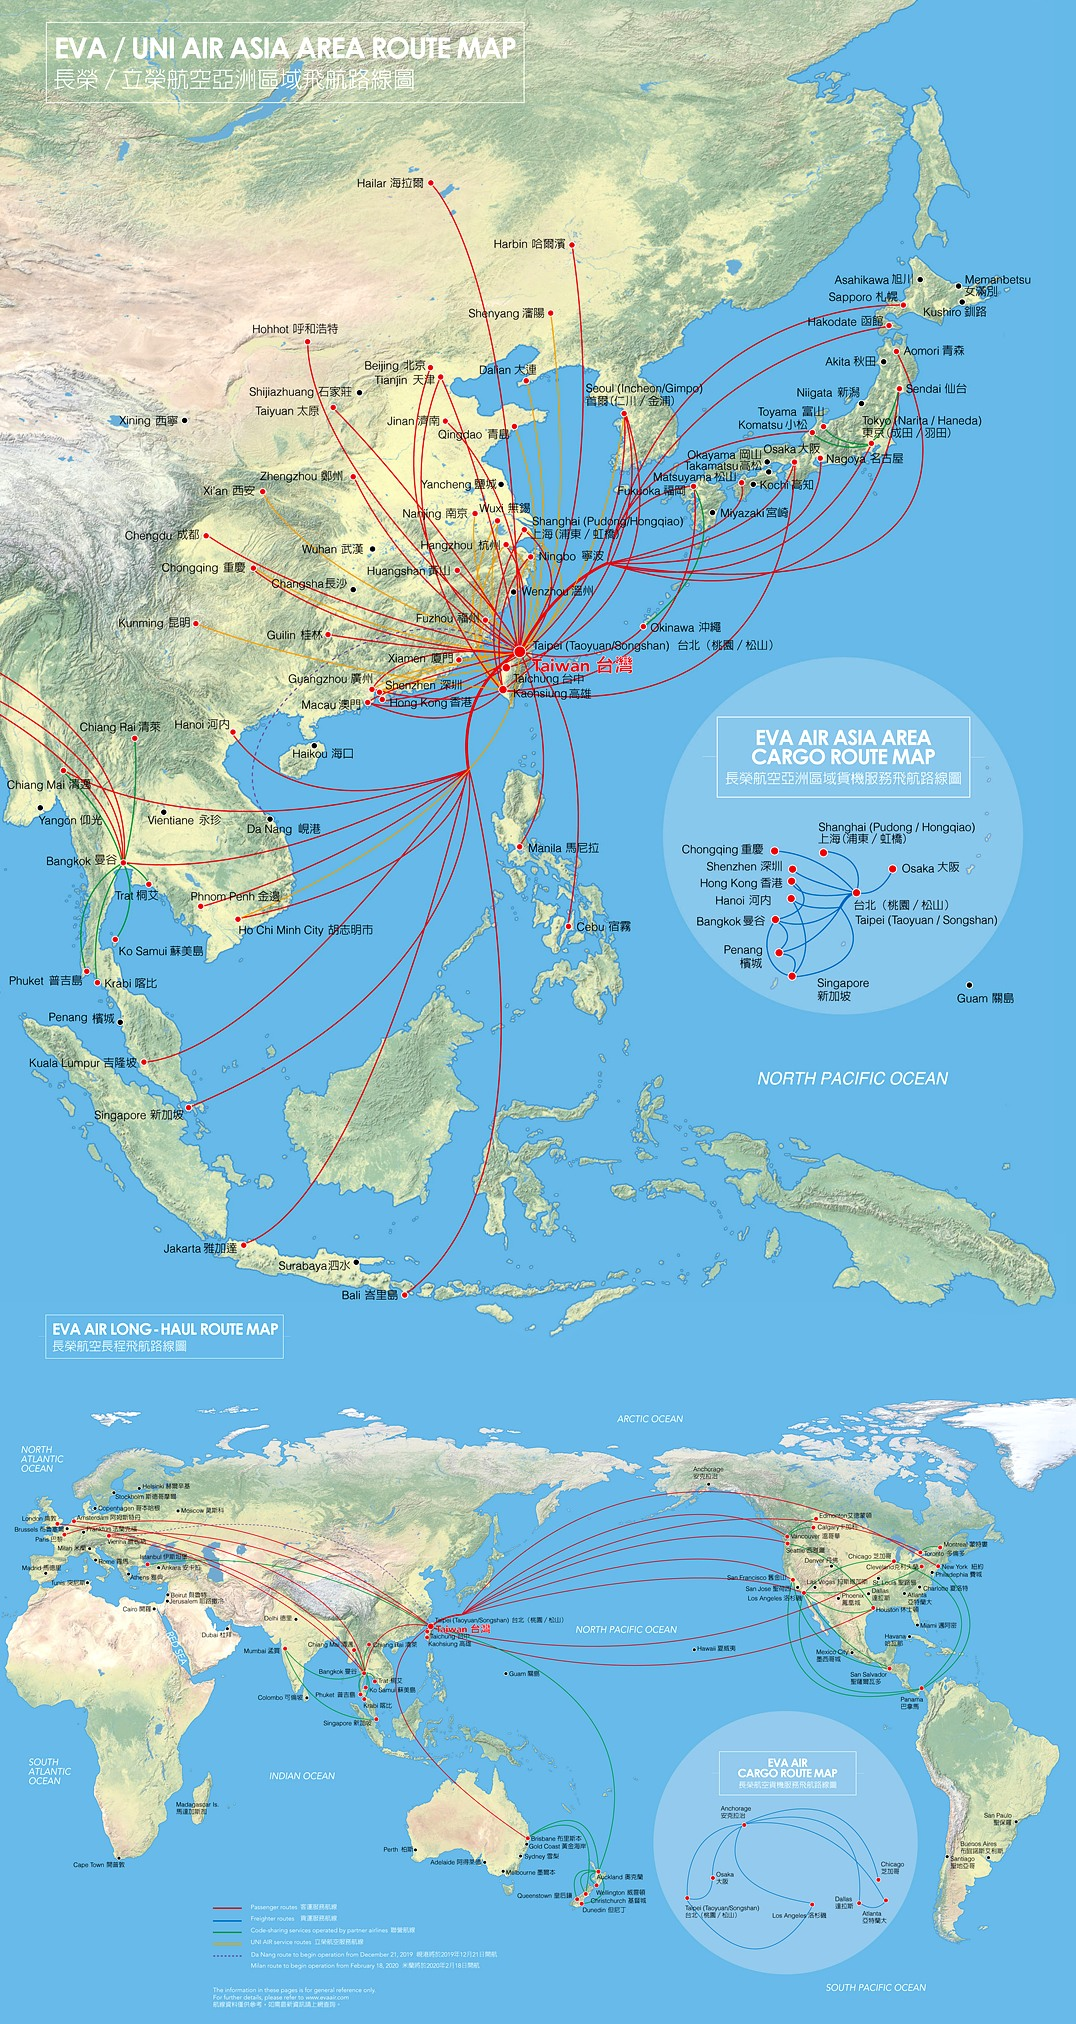 Route Maps - EVA Air | America on